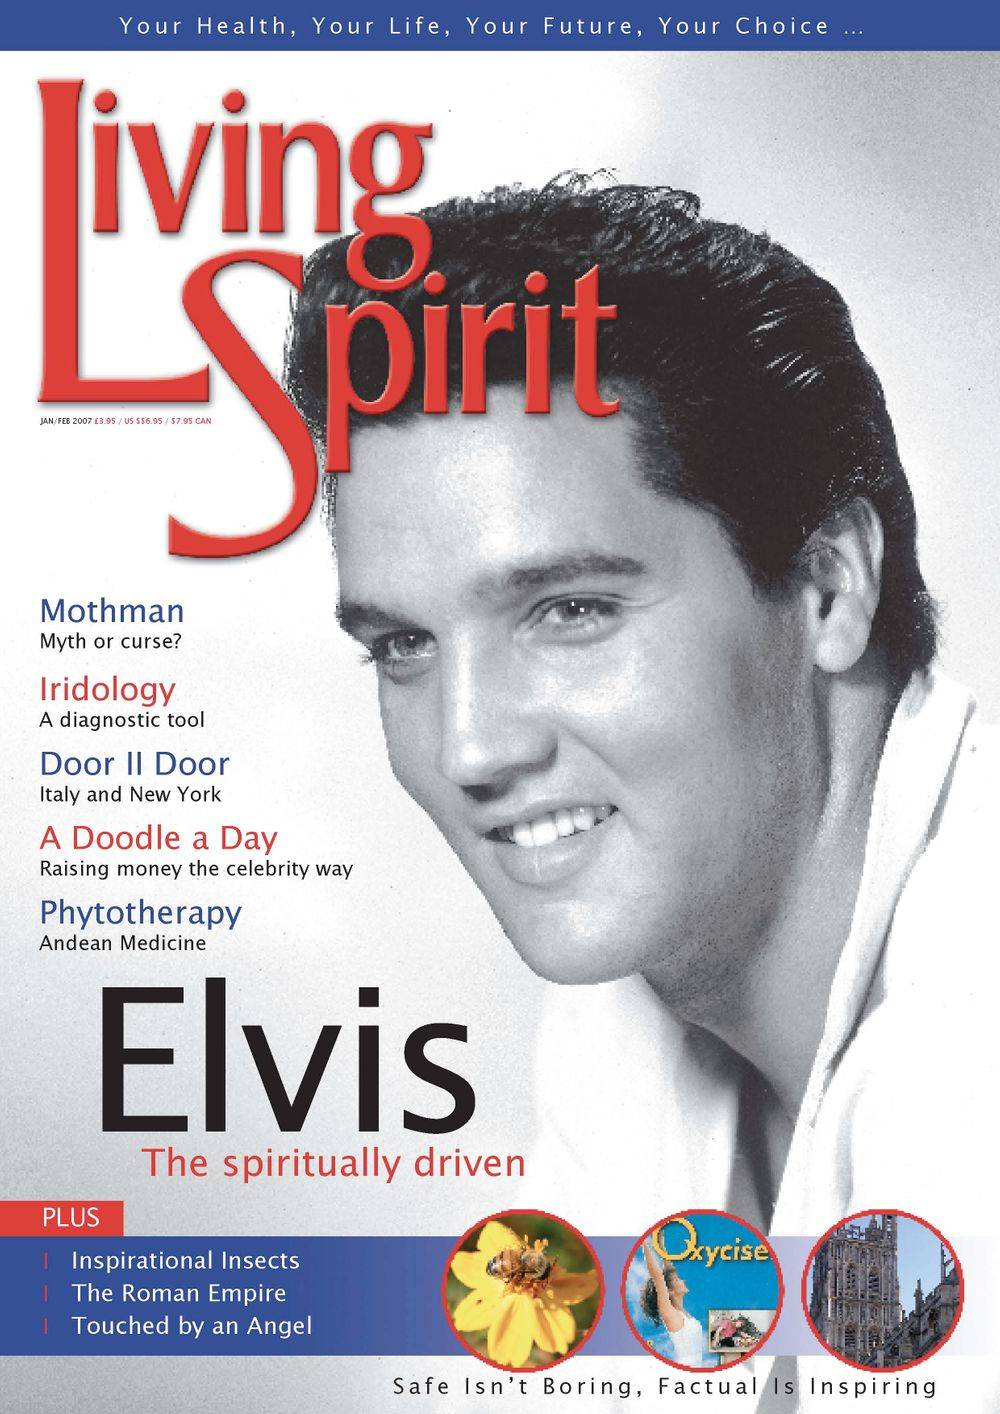 Living Spirit Magazine - quarterly release - spirituality, education, relationships, politics, travel, holiday markets